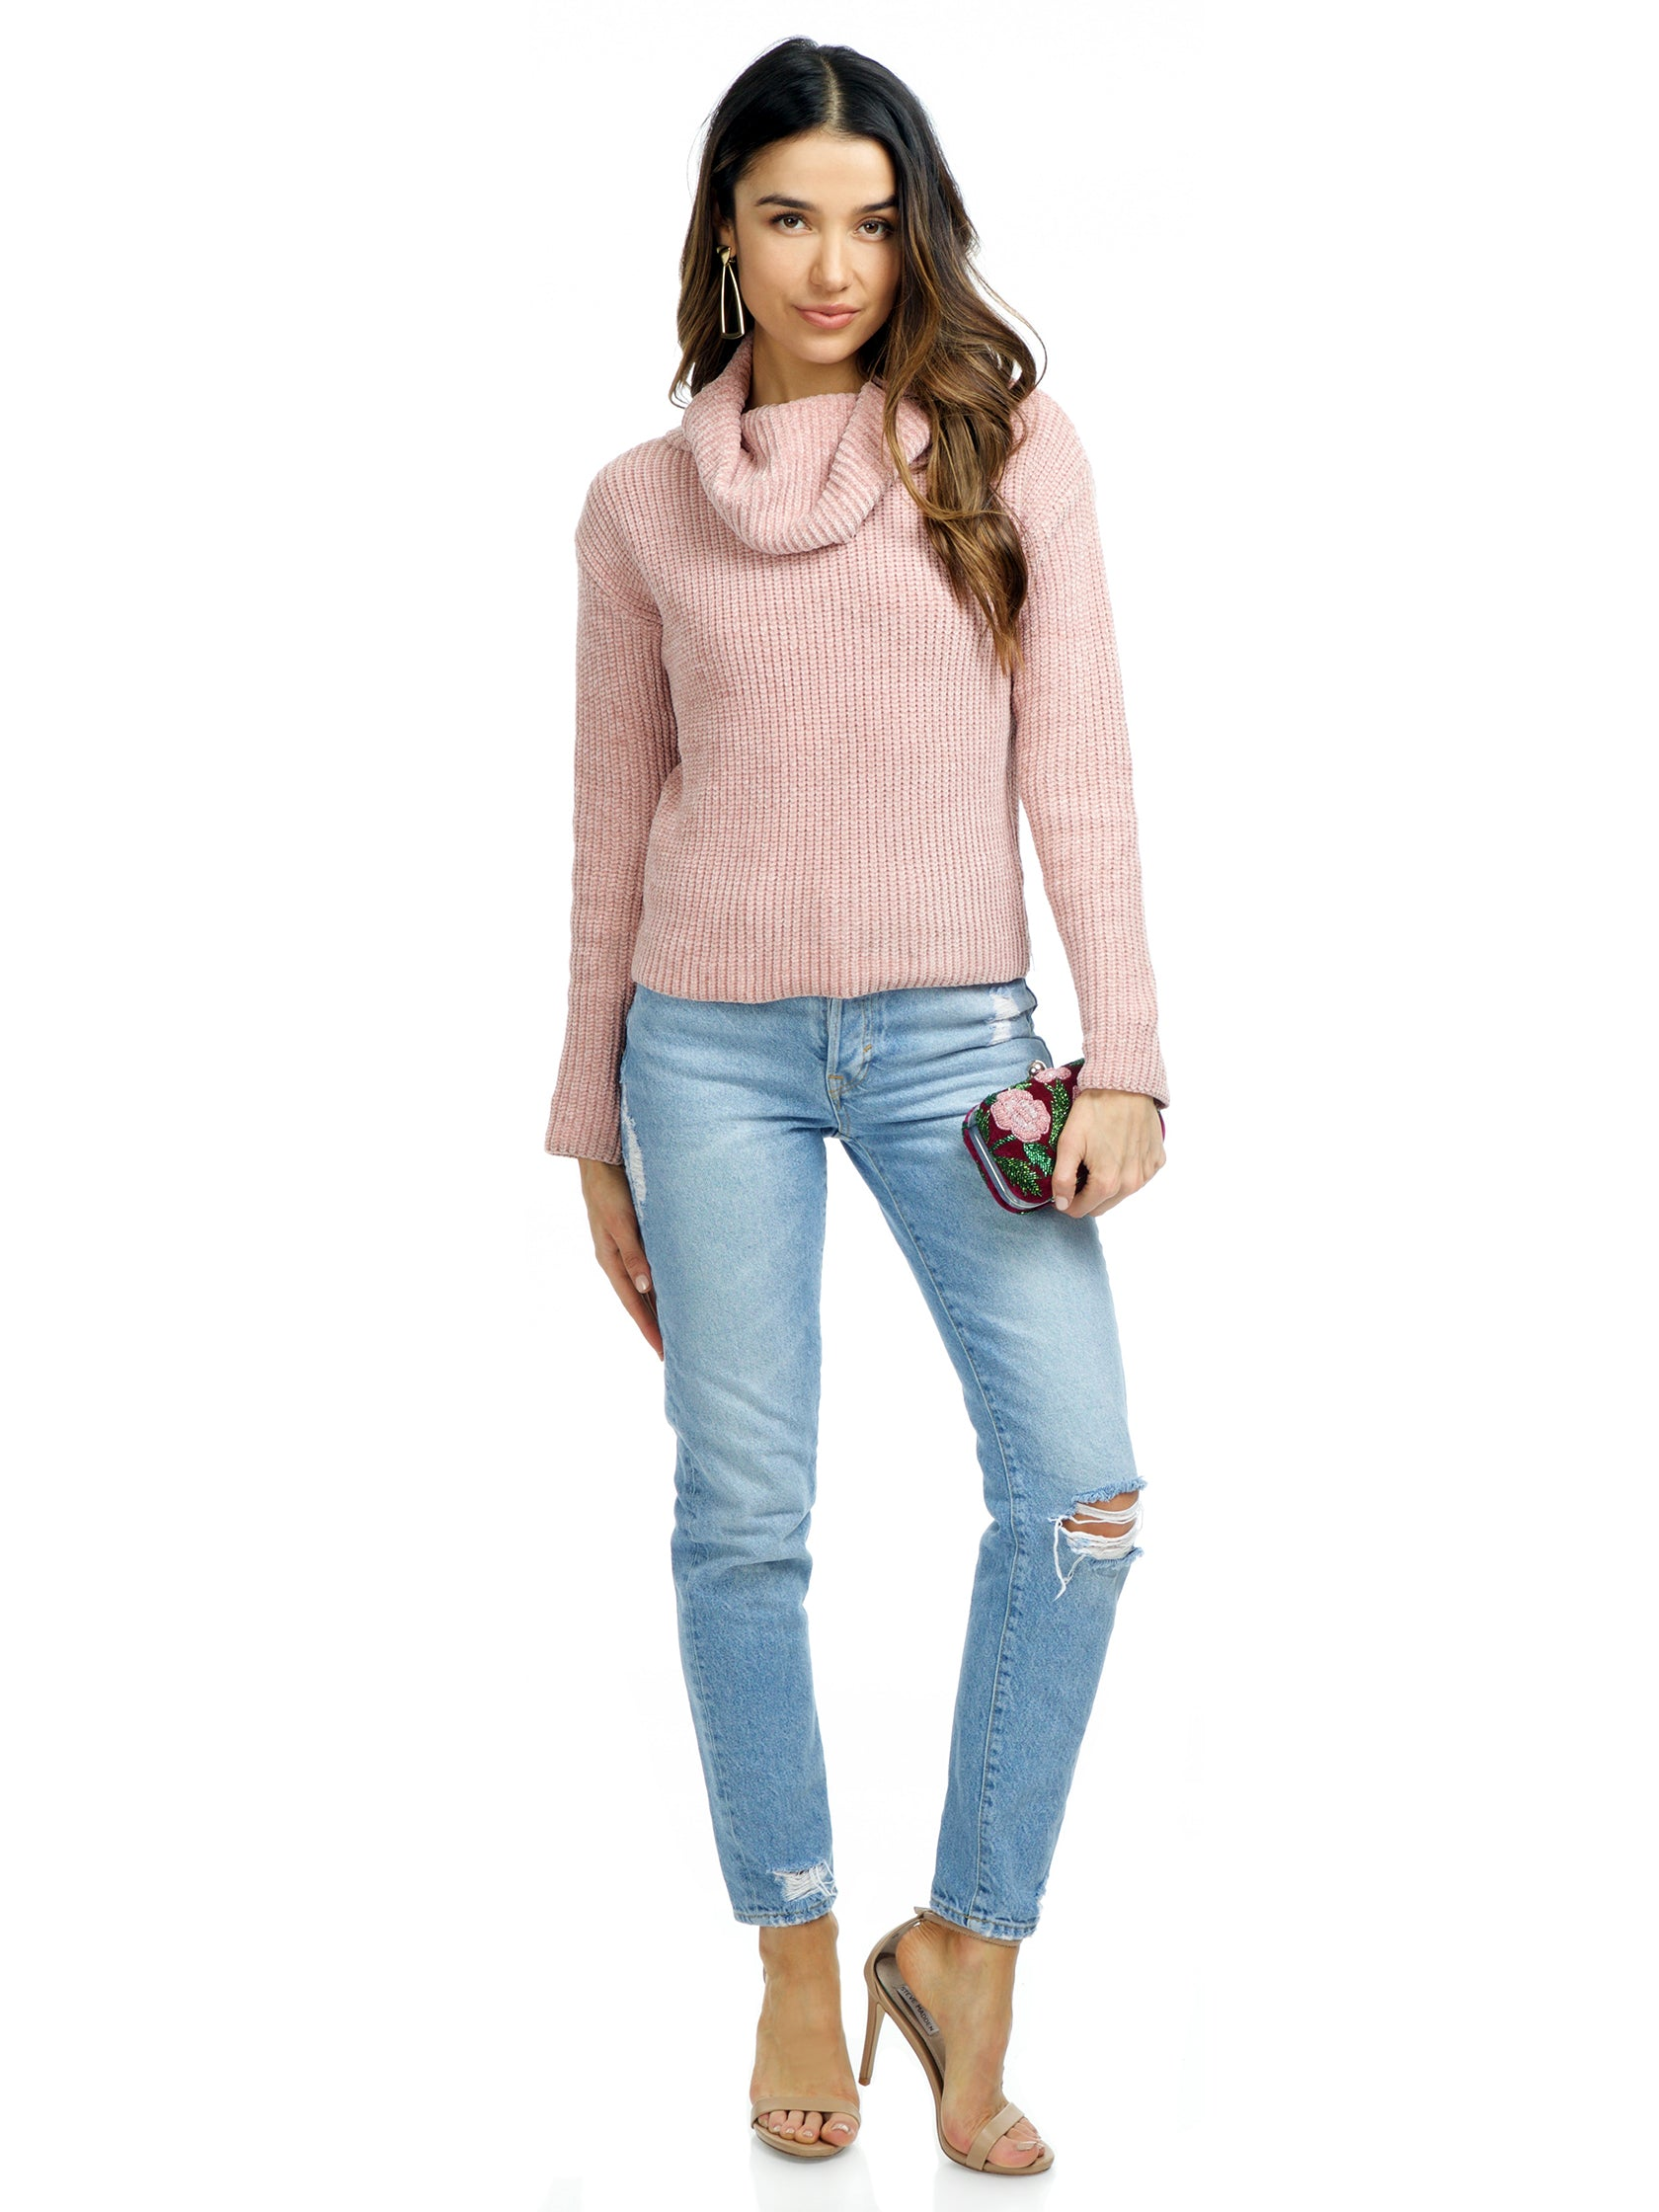 Women wearing a sweater rental from FashionPass called Make Me Blush Sweater